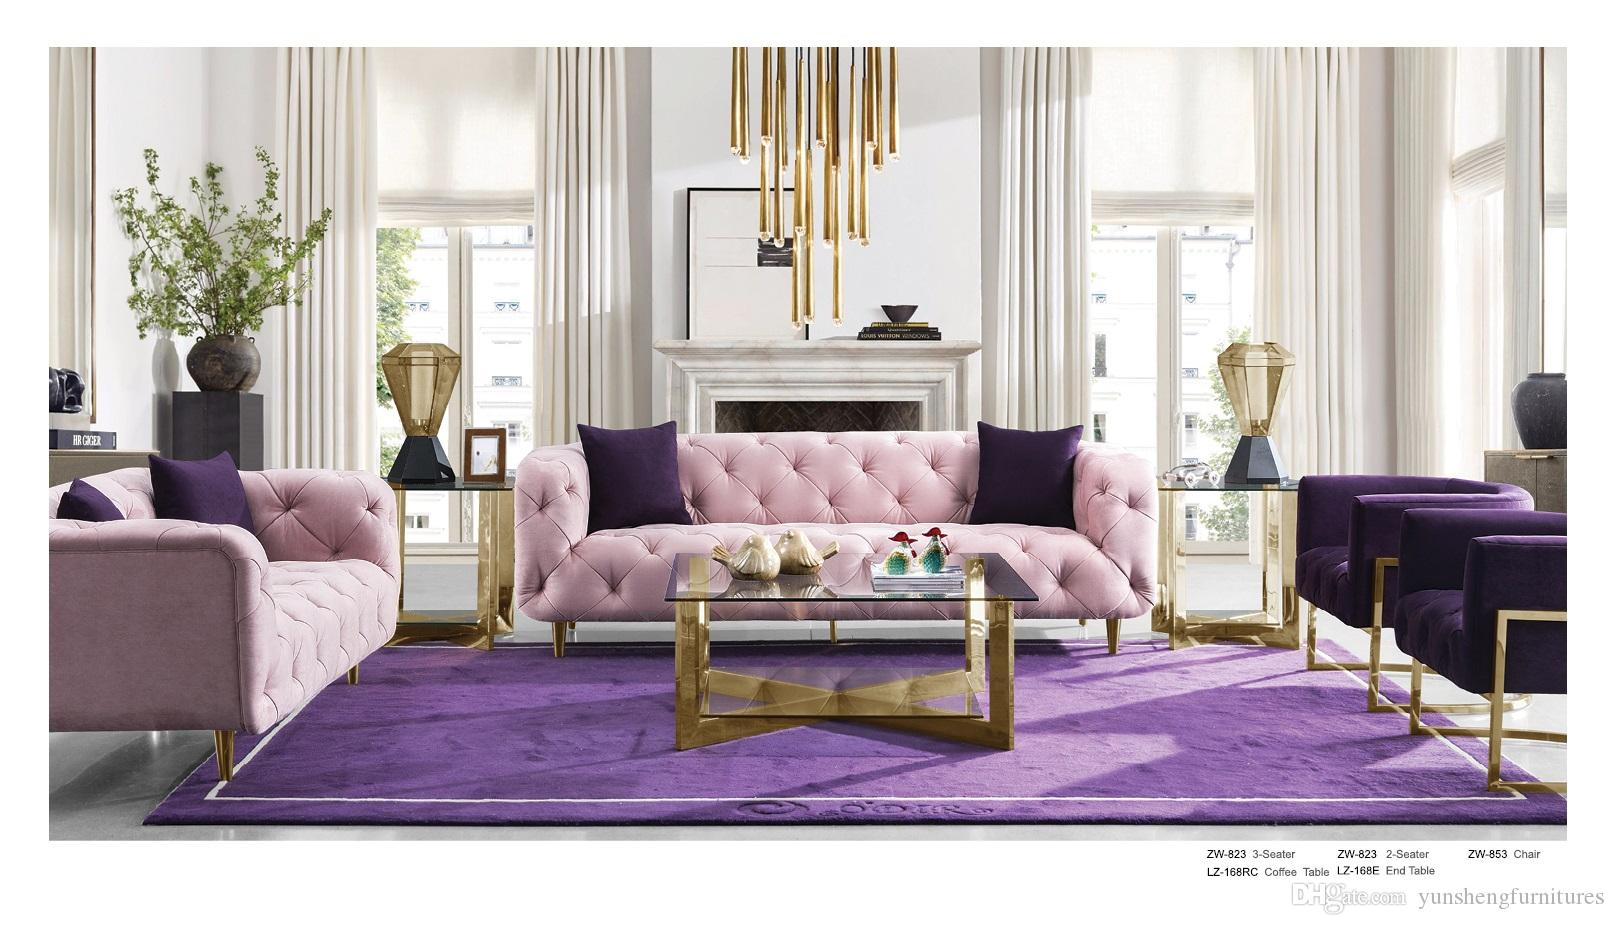 Enjoyable 2019 Velvet Chesterfield Sofa Design For Living Room Living Room Furniture Modern Antique Pink Use Loveseat Three Seat From Yunshengfurnitures Alphanode Cool Chair Designs And Ideas Alphanodeonline